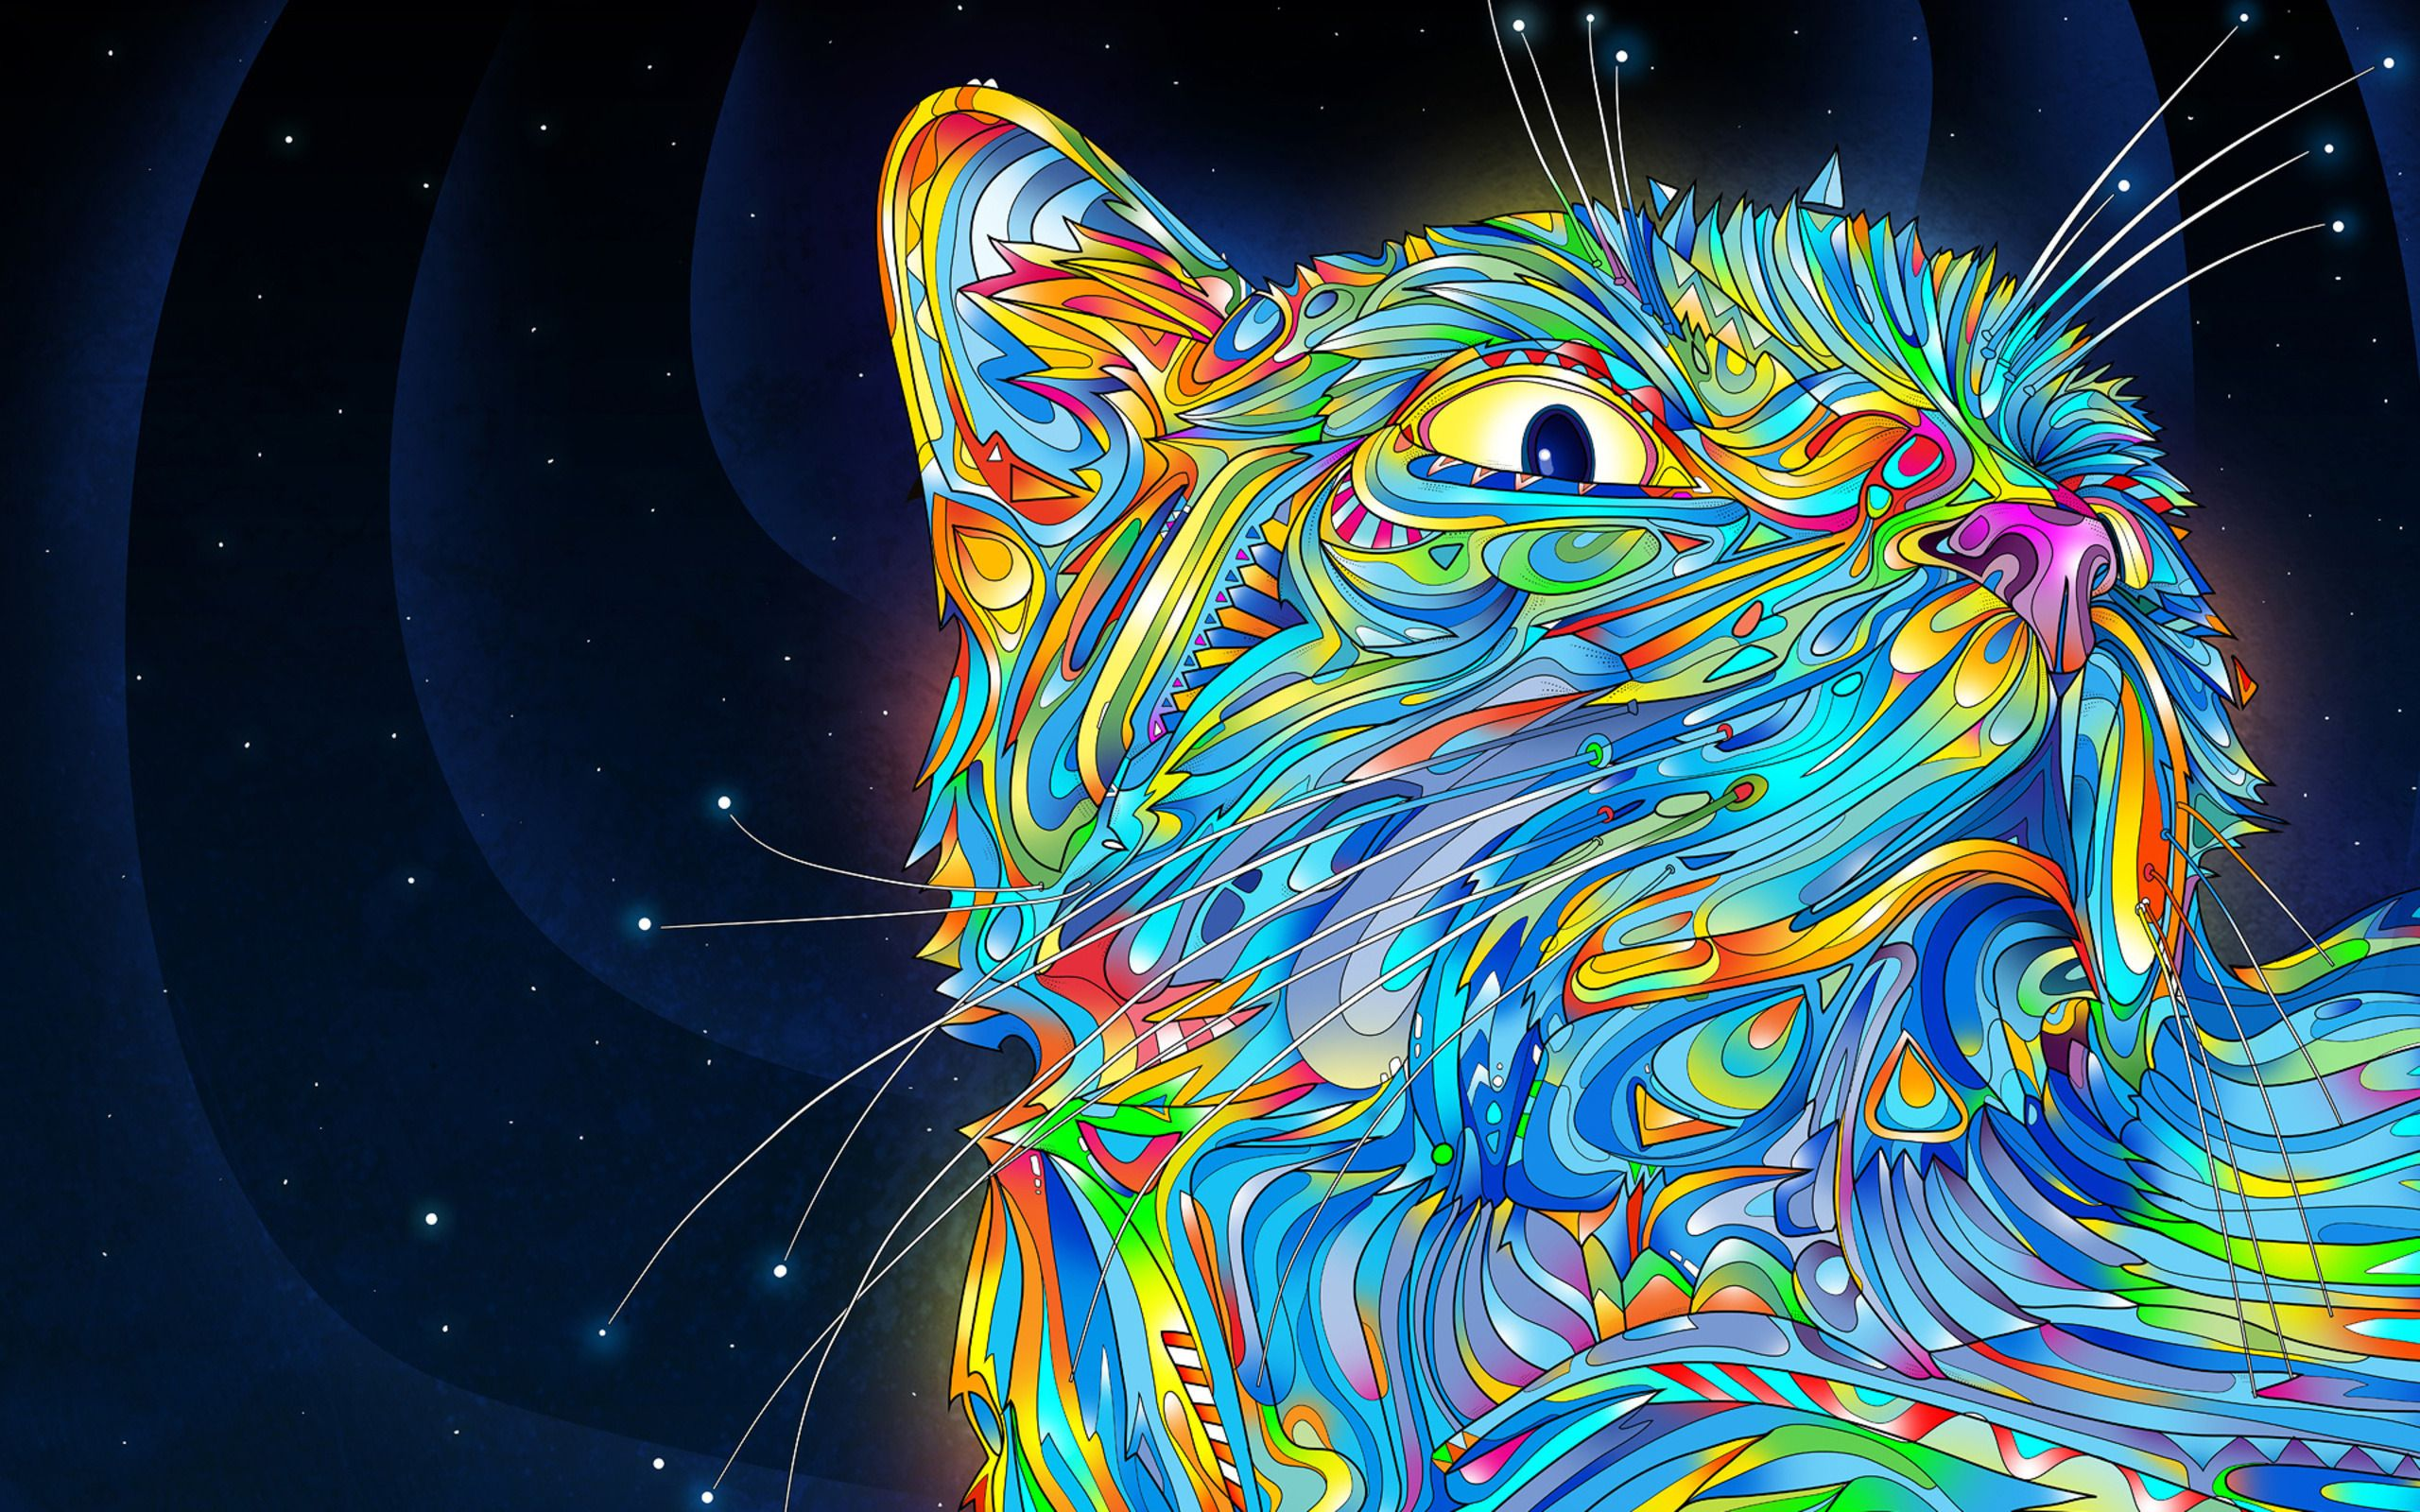 Mi Arte Definition Art Colorful Cat Graphic Hd Wallpaper High Definition Hd